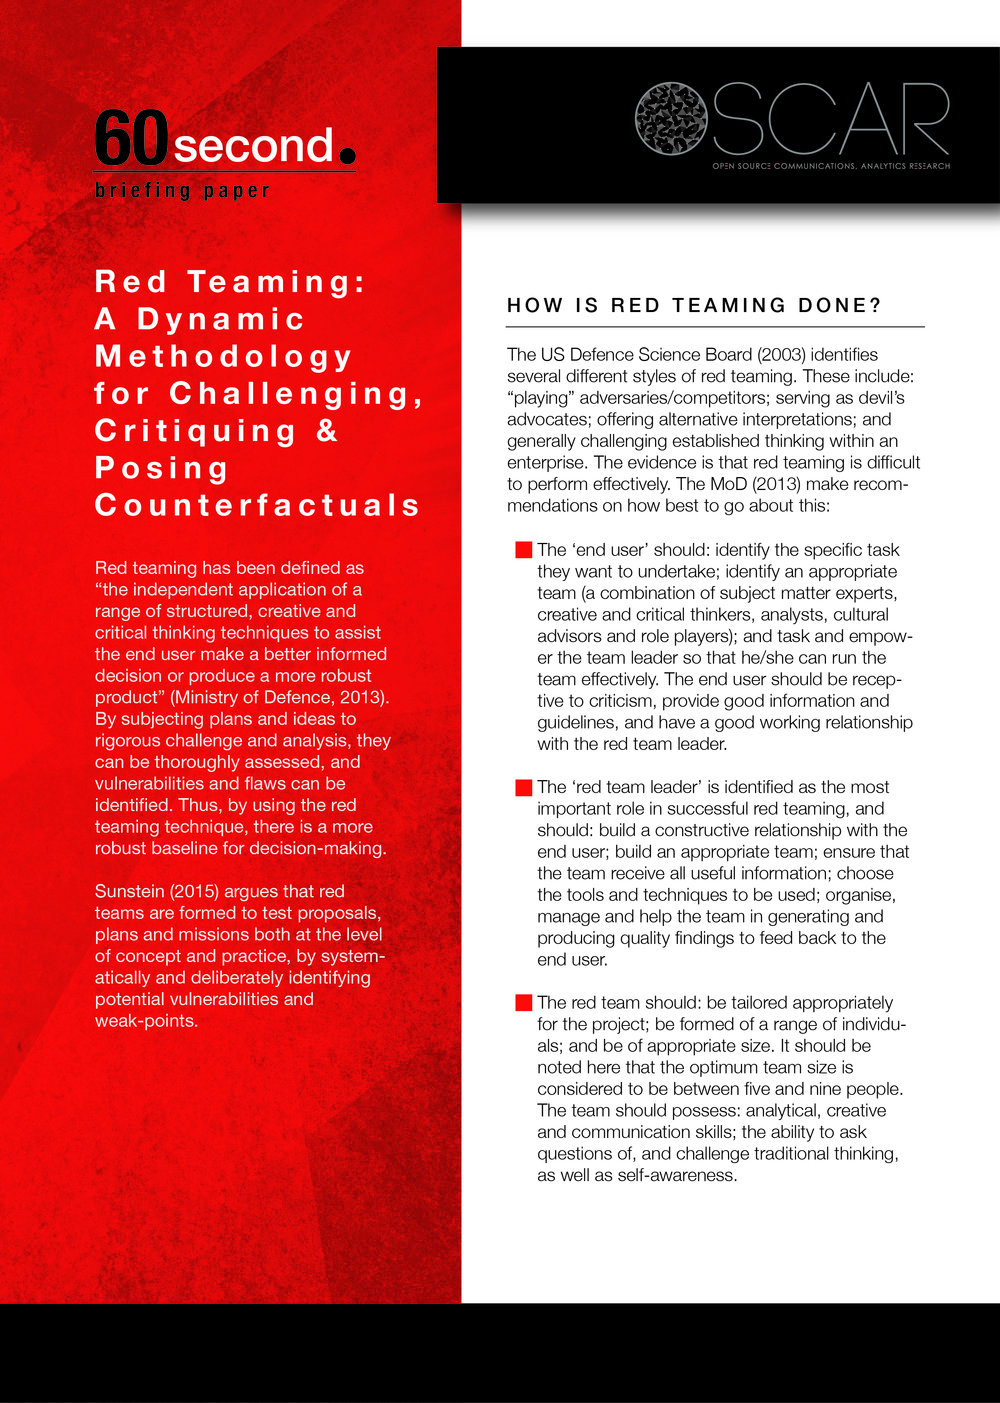 Red Teaming: A Dynamic Methodology for Challenging, Critiquing & Posing Counterfactuals